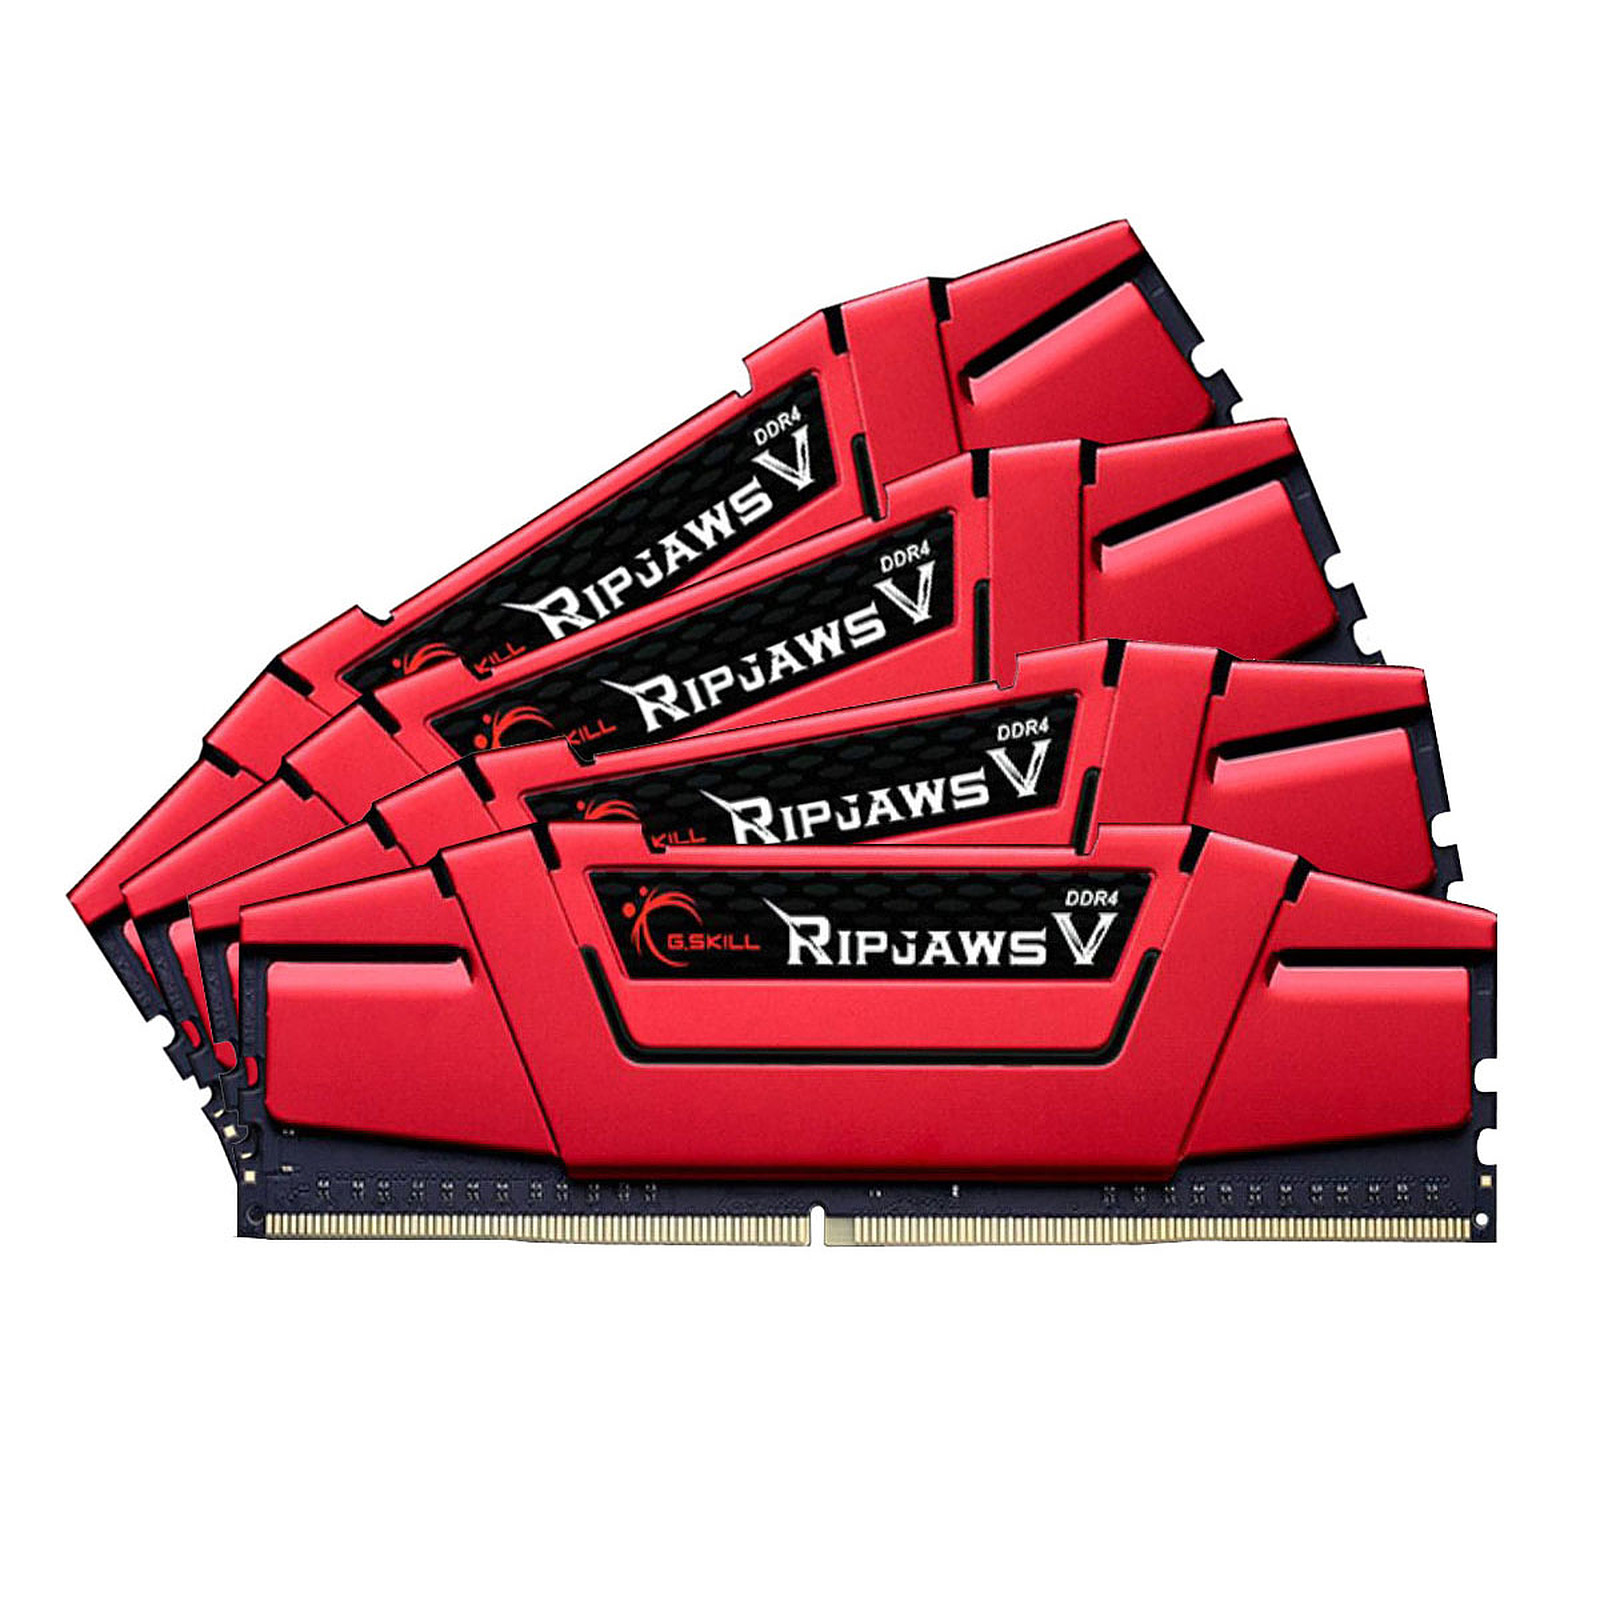 G.Skill RipJaws 5 Series Rouge 32 Go (4x8 Go) DDR4 3600 MHz CL19